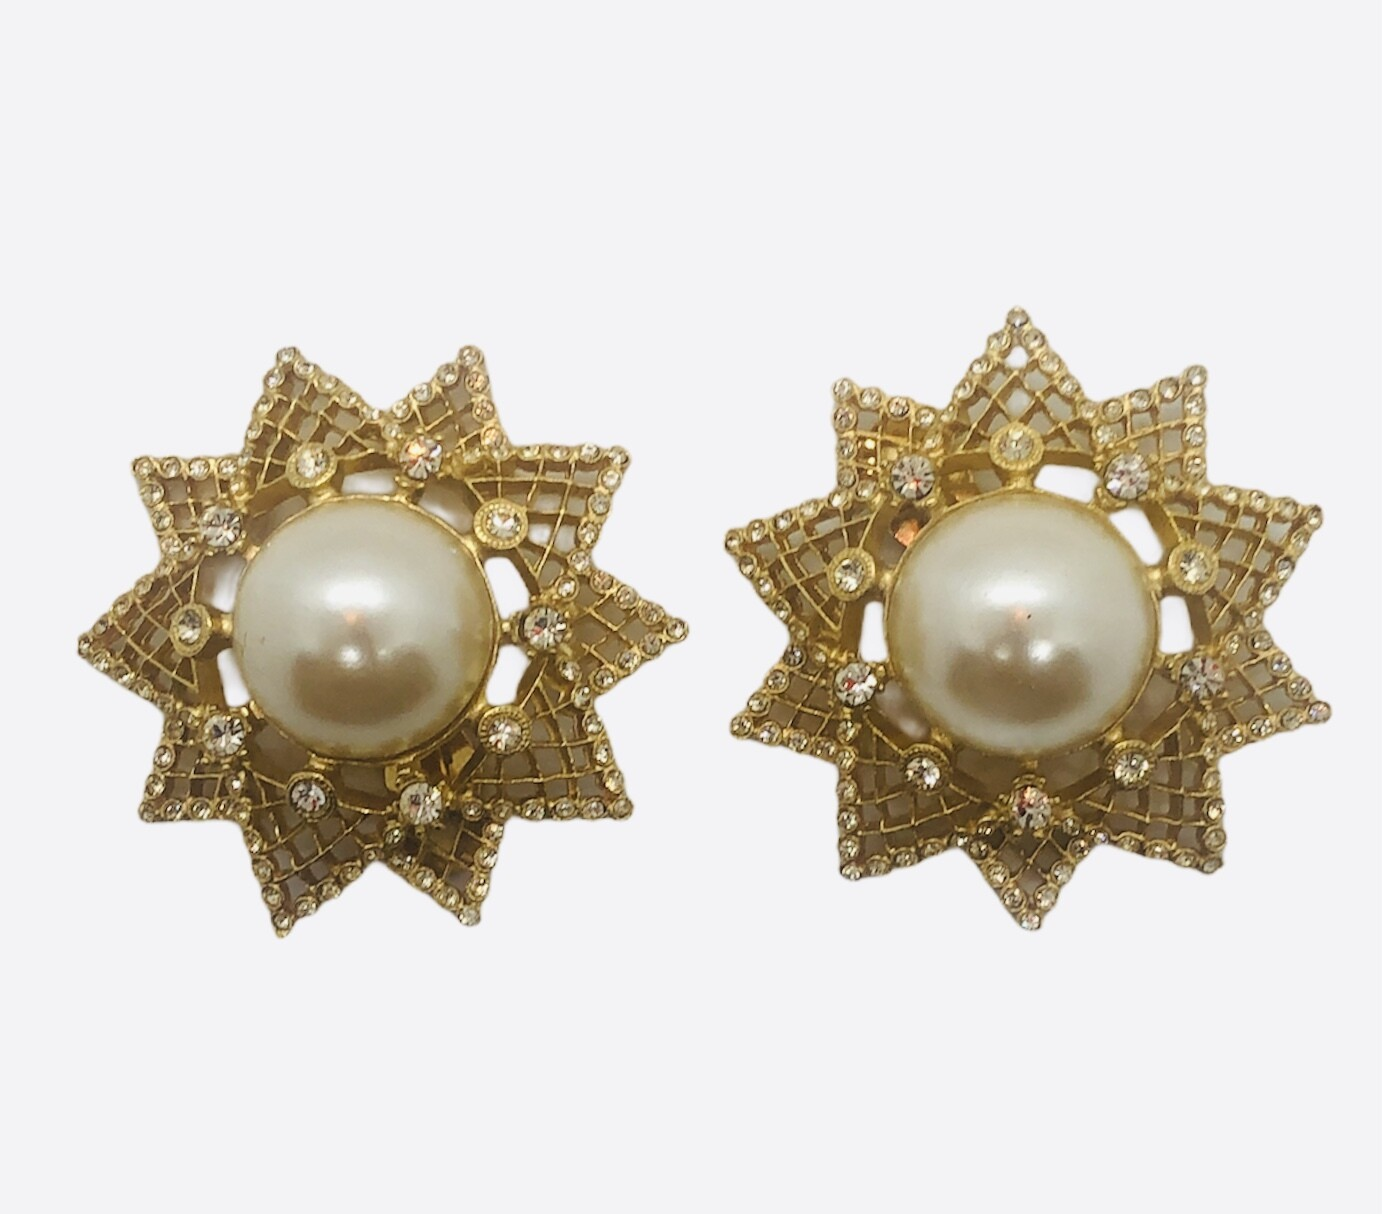 NEW Rhinestone and Pearl Large Star Clip Statement Earrings